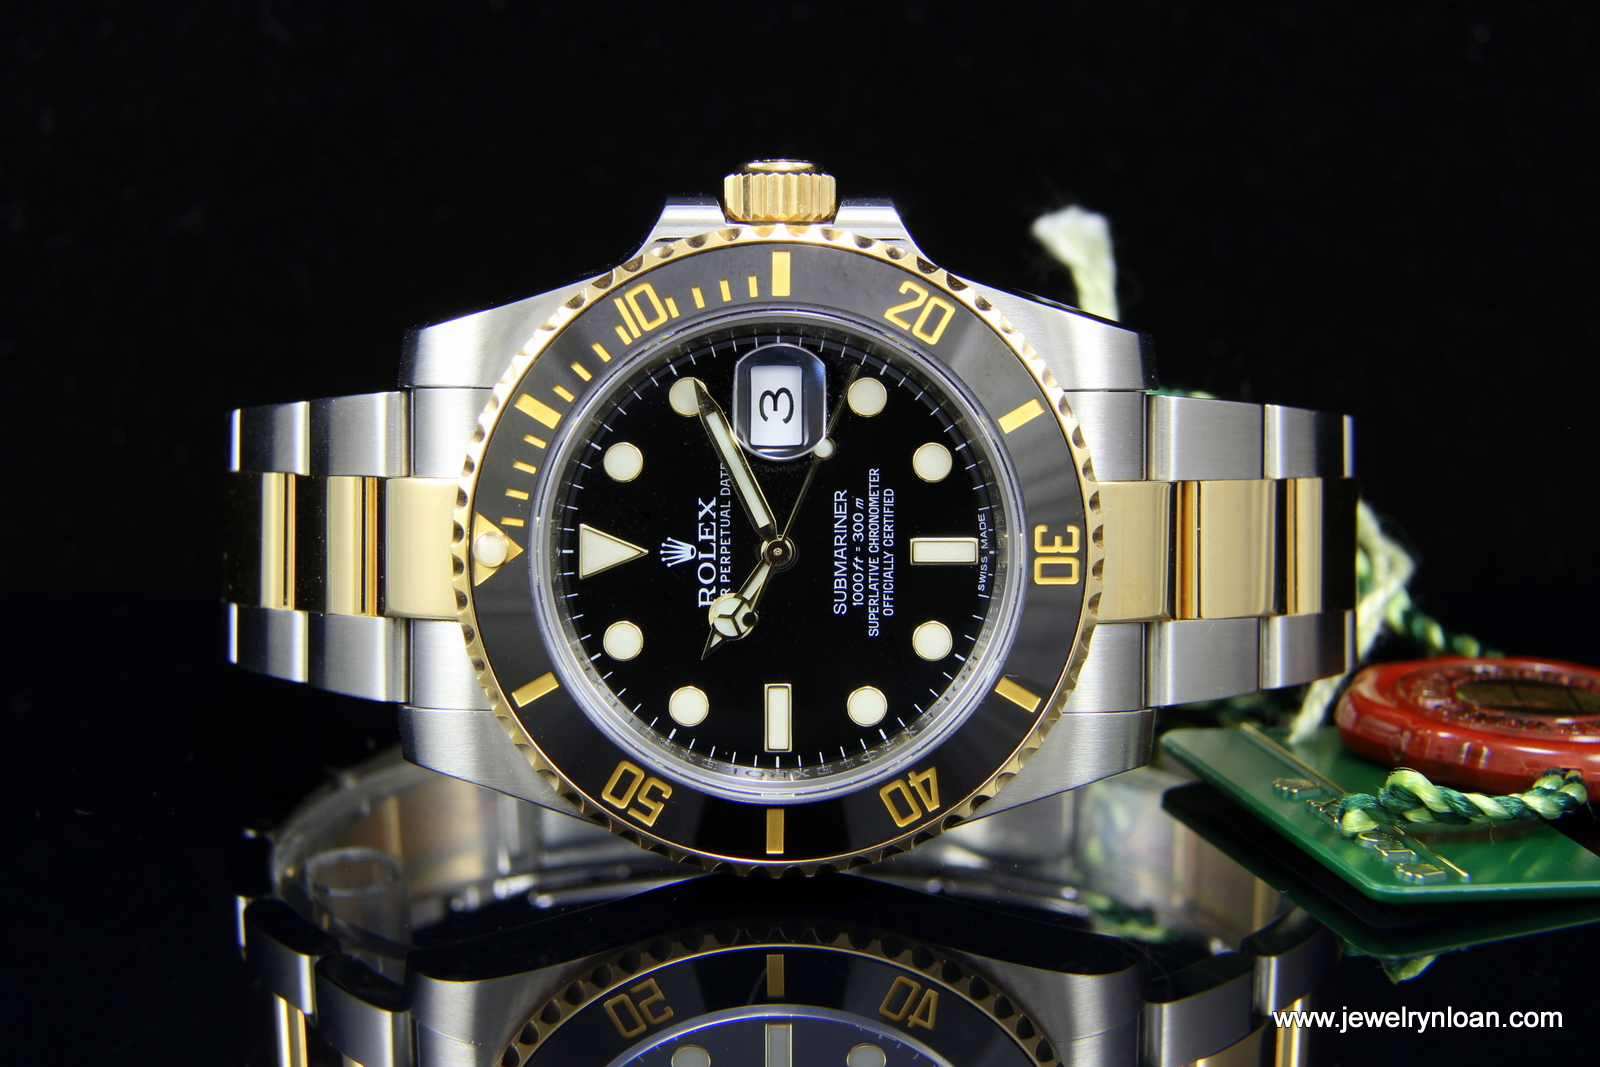 Buy Pre-Owned Rolex Watches